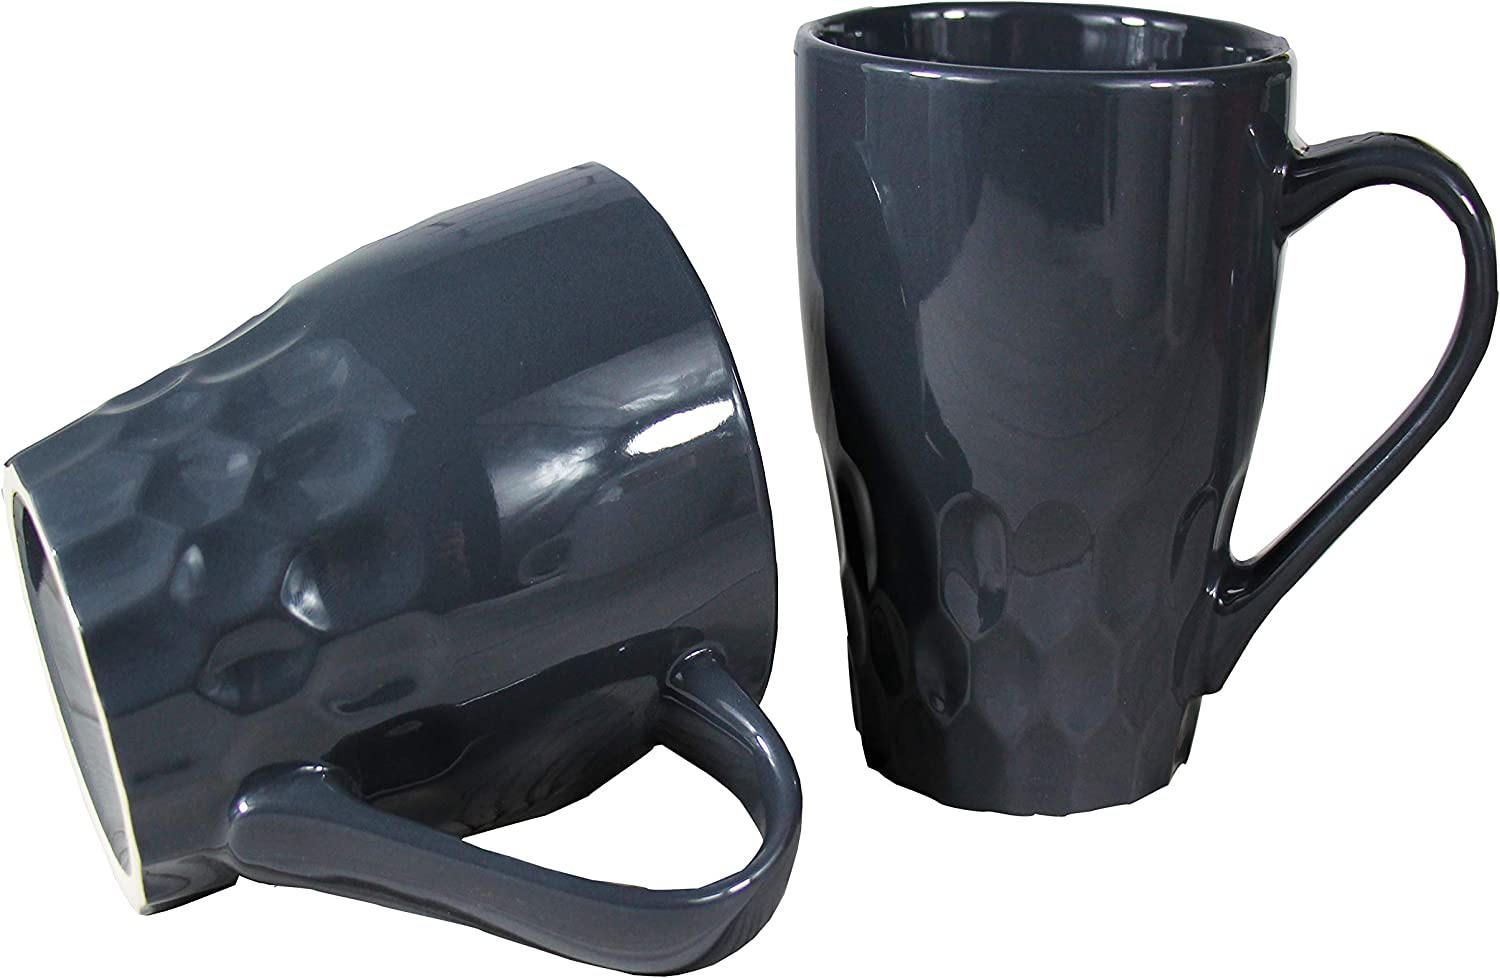 16oz Ceramic Coffee Mug Set of 2 Tea Cup for Office and Home with unique design (Gray)